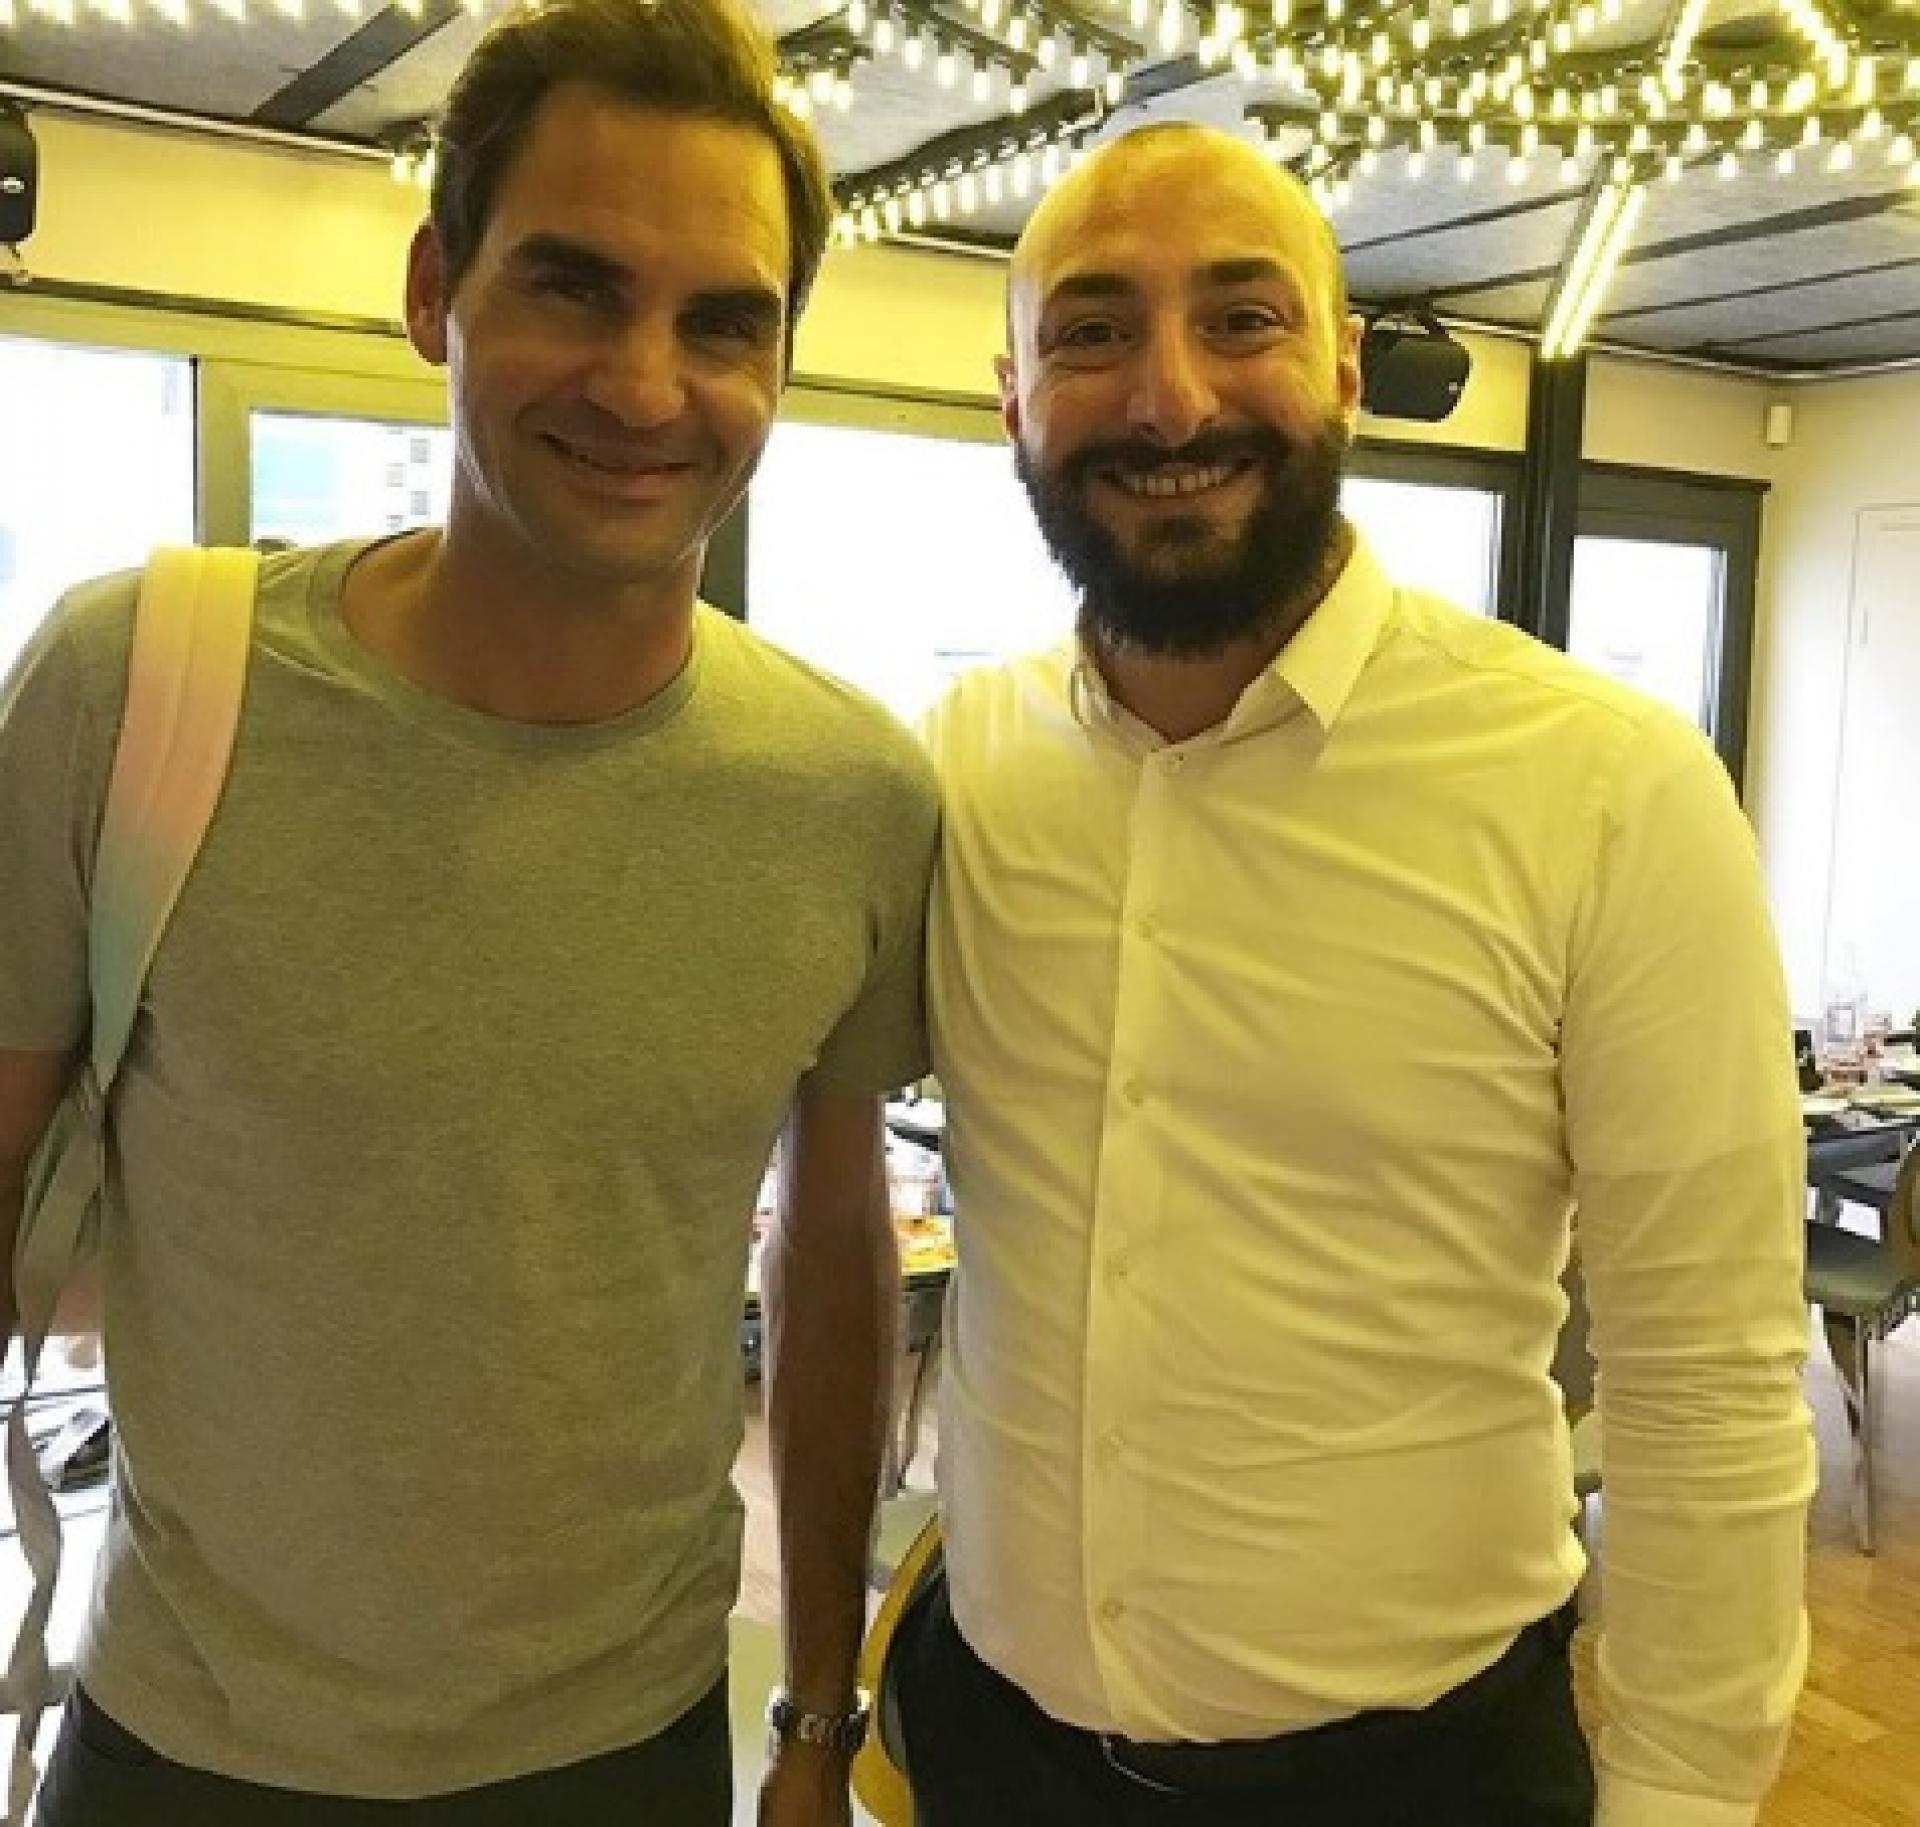 Roger Federer shocks Italian restaurant owner in Geneva